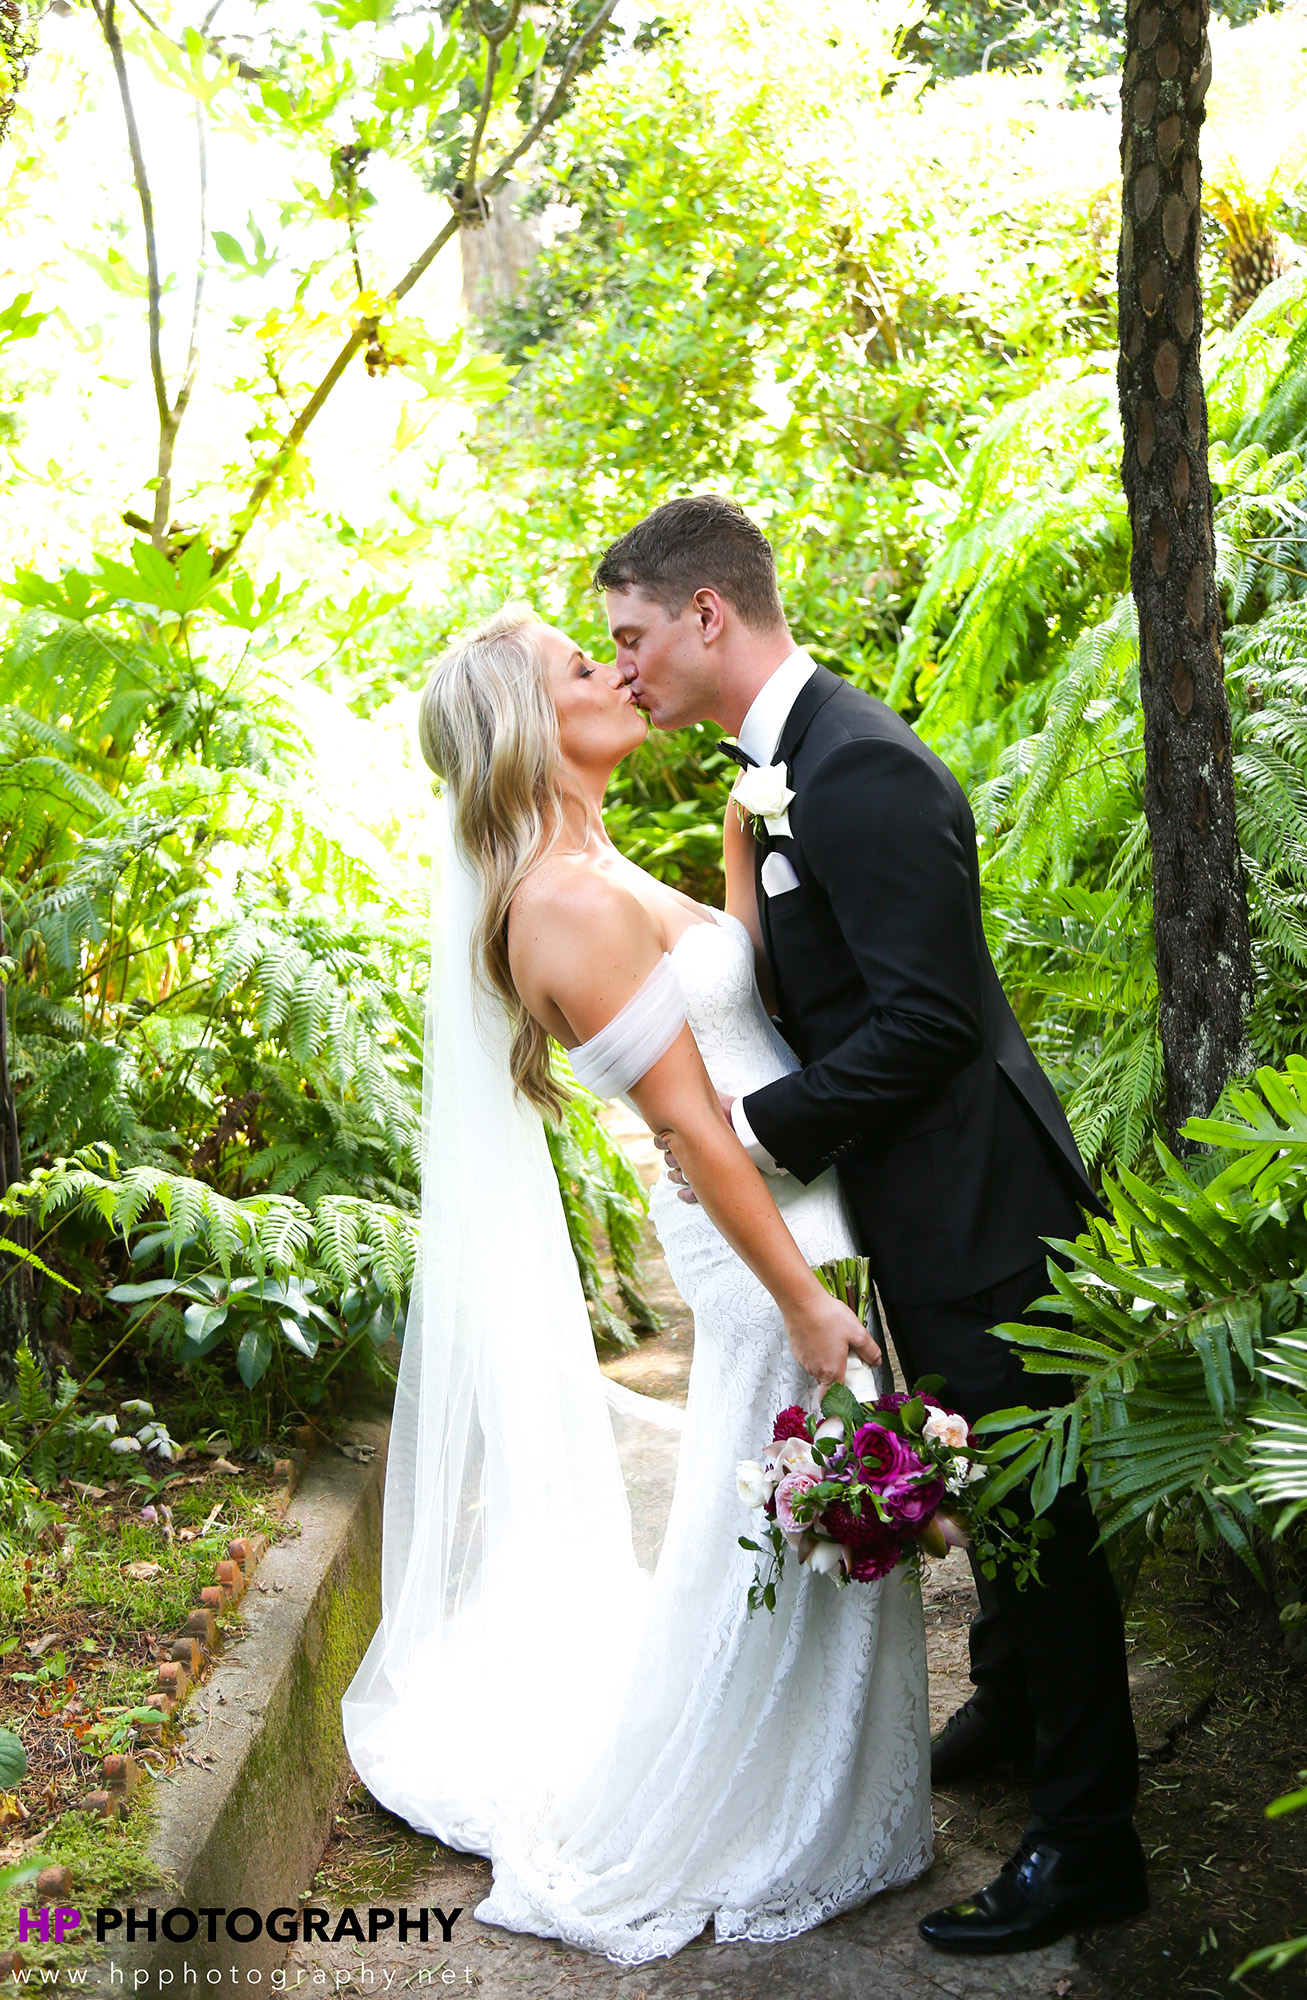 Bec & Ty - Married at Ripponlea Estate - Saturday 14 January 2017